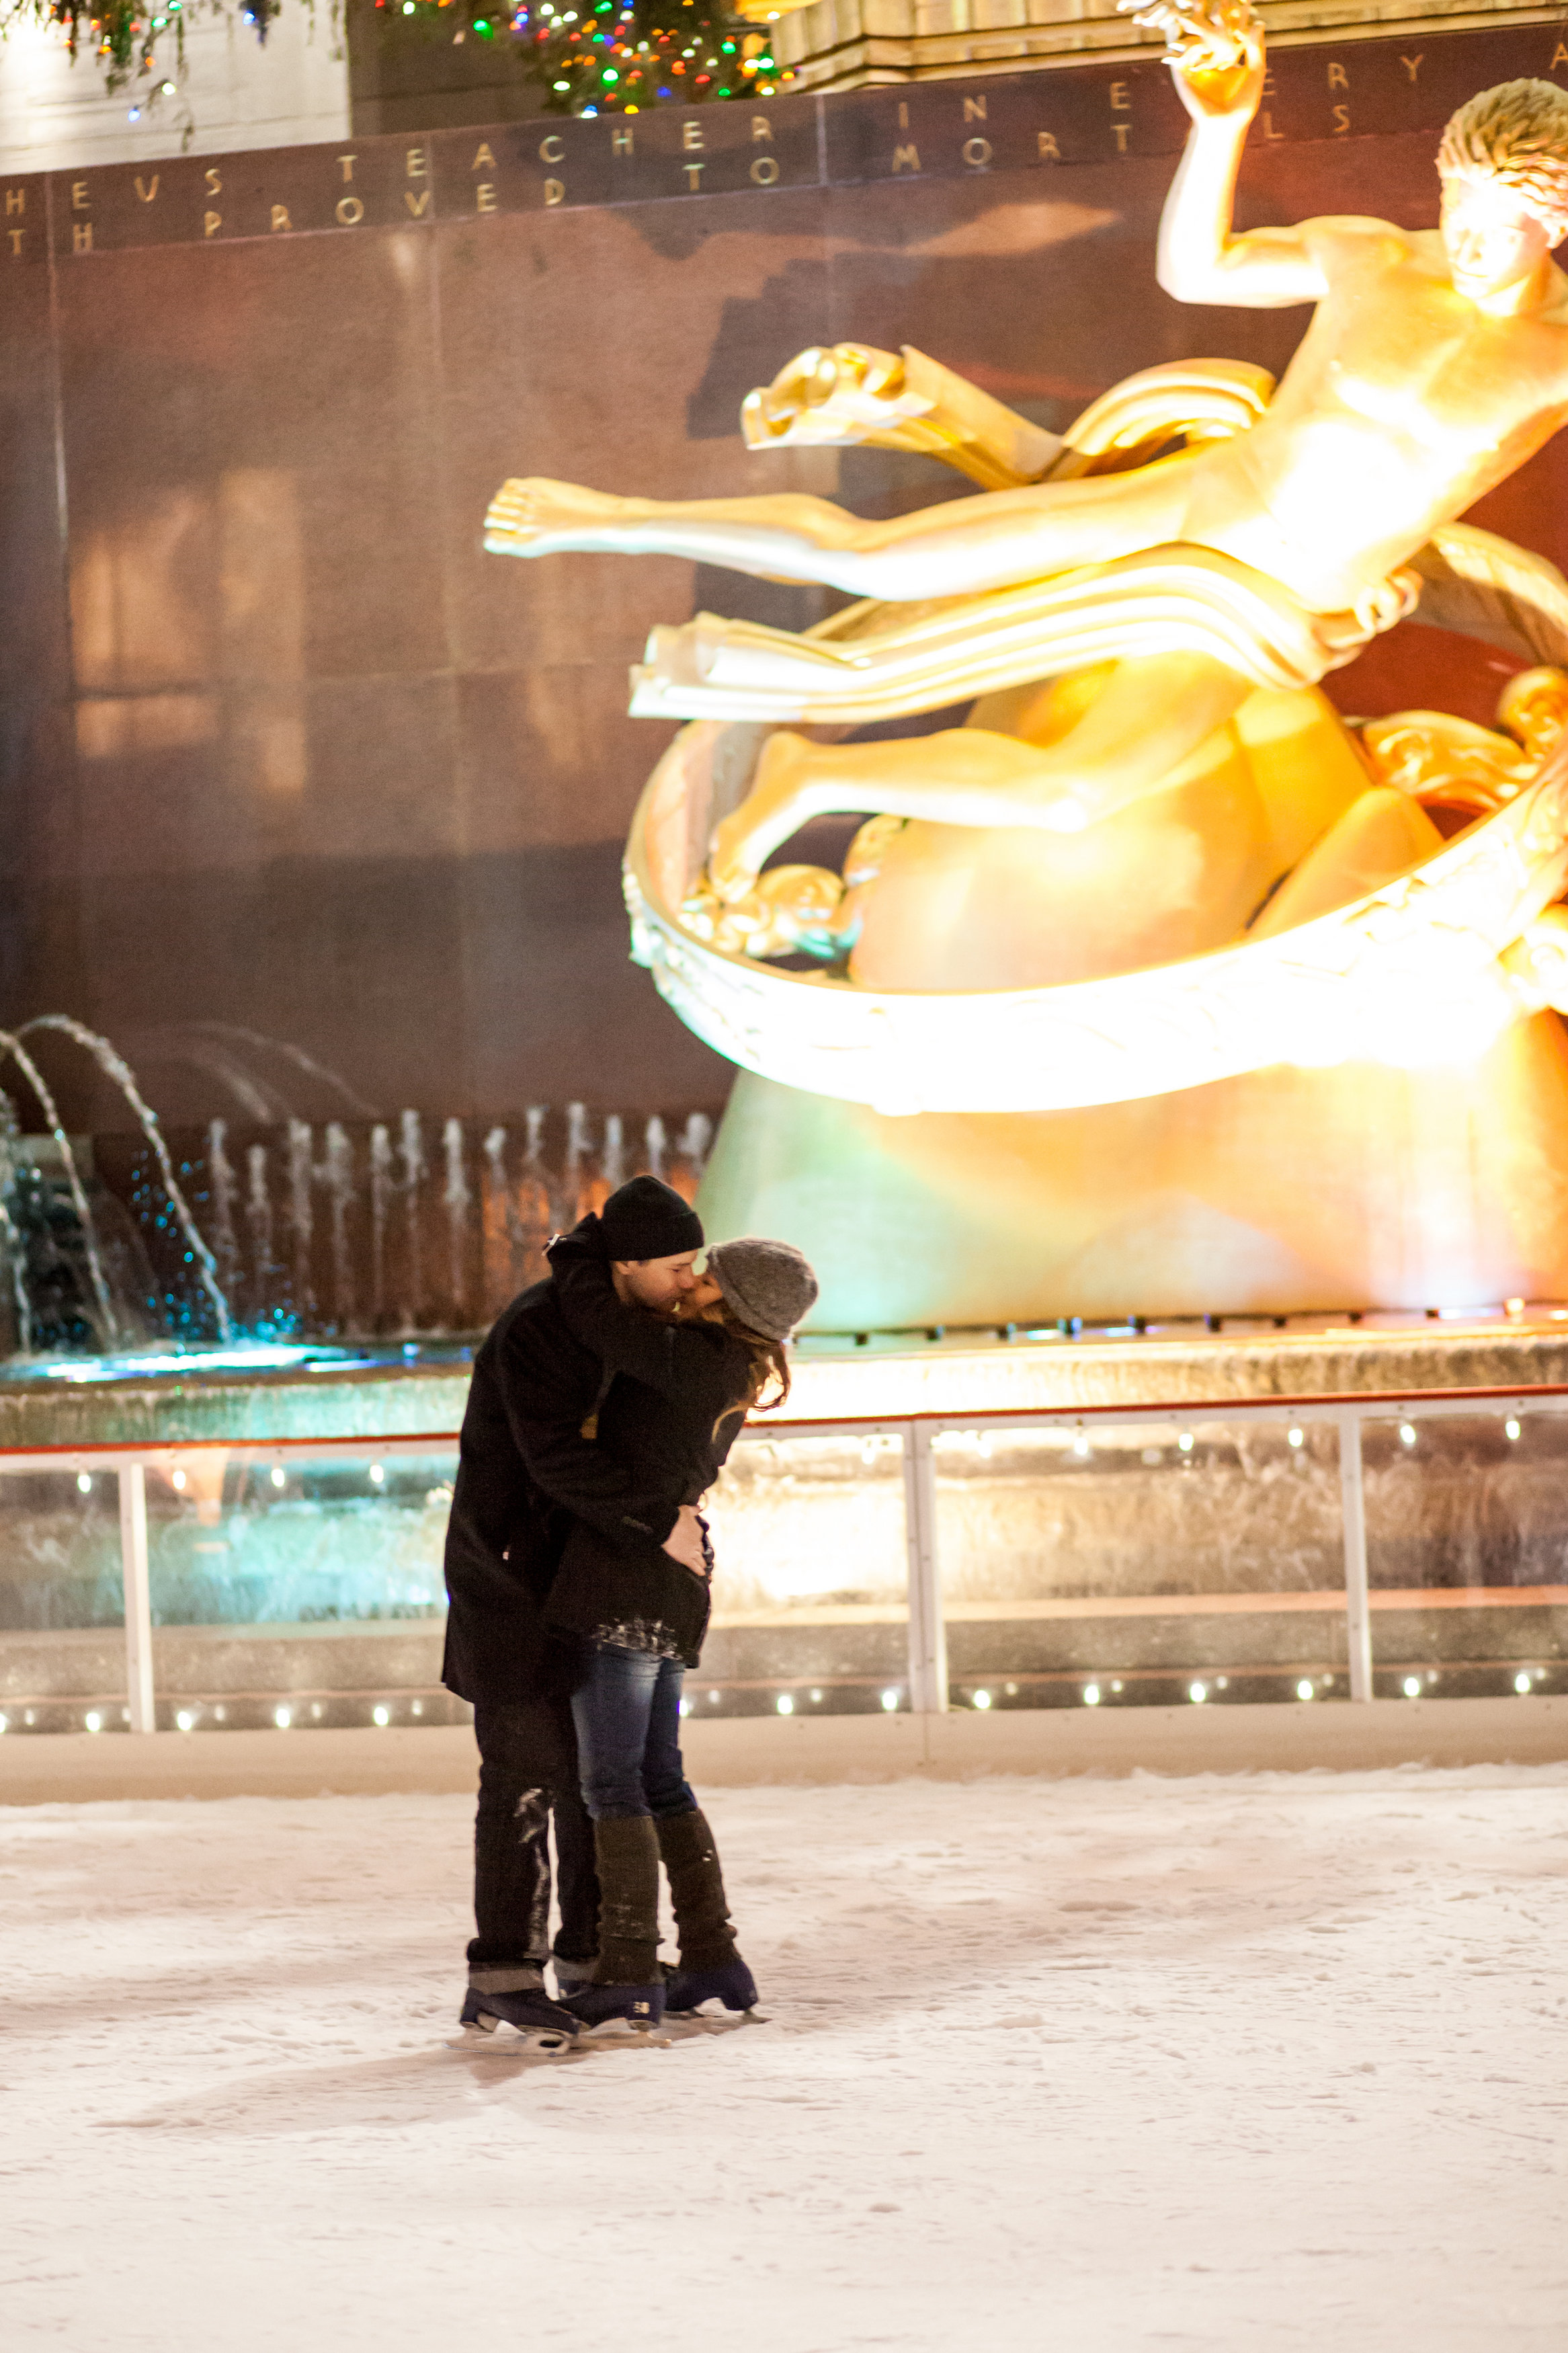 Image 8 of Christmas Day Proposal at Rockefeller Plaza